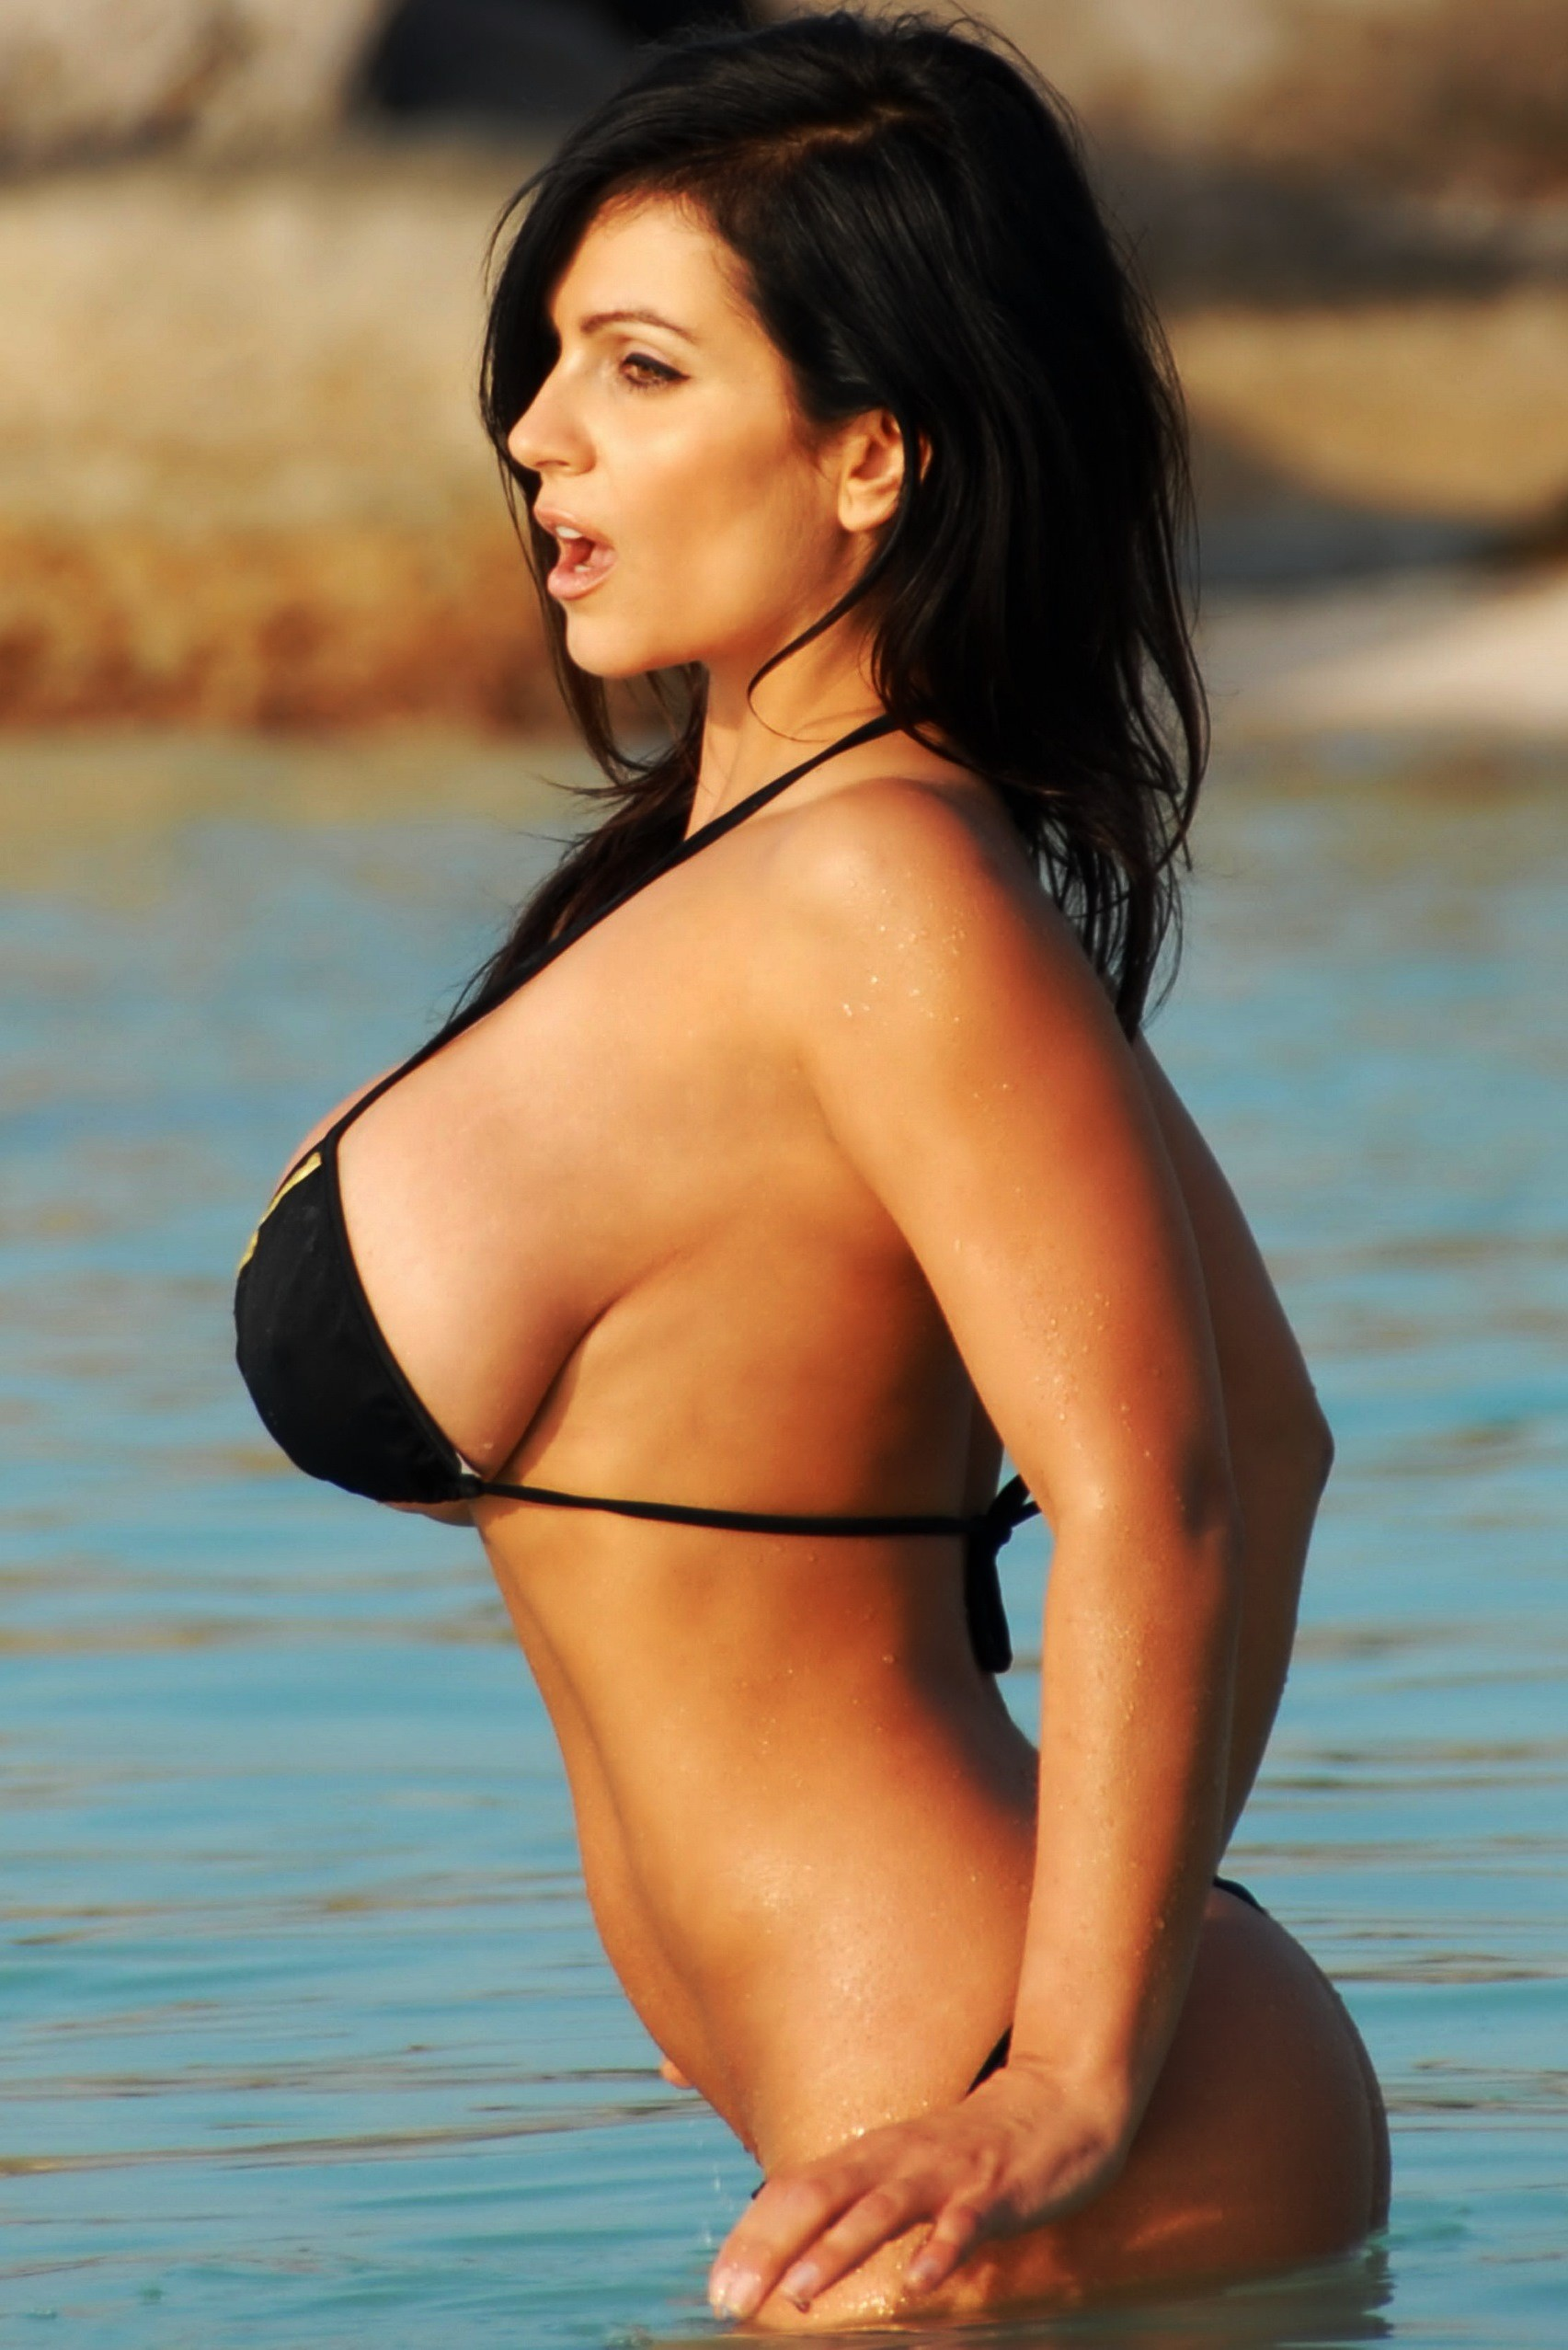 Denise Milani Iphone Sexy Wallpapers